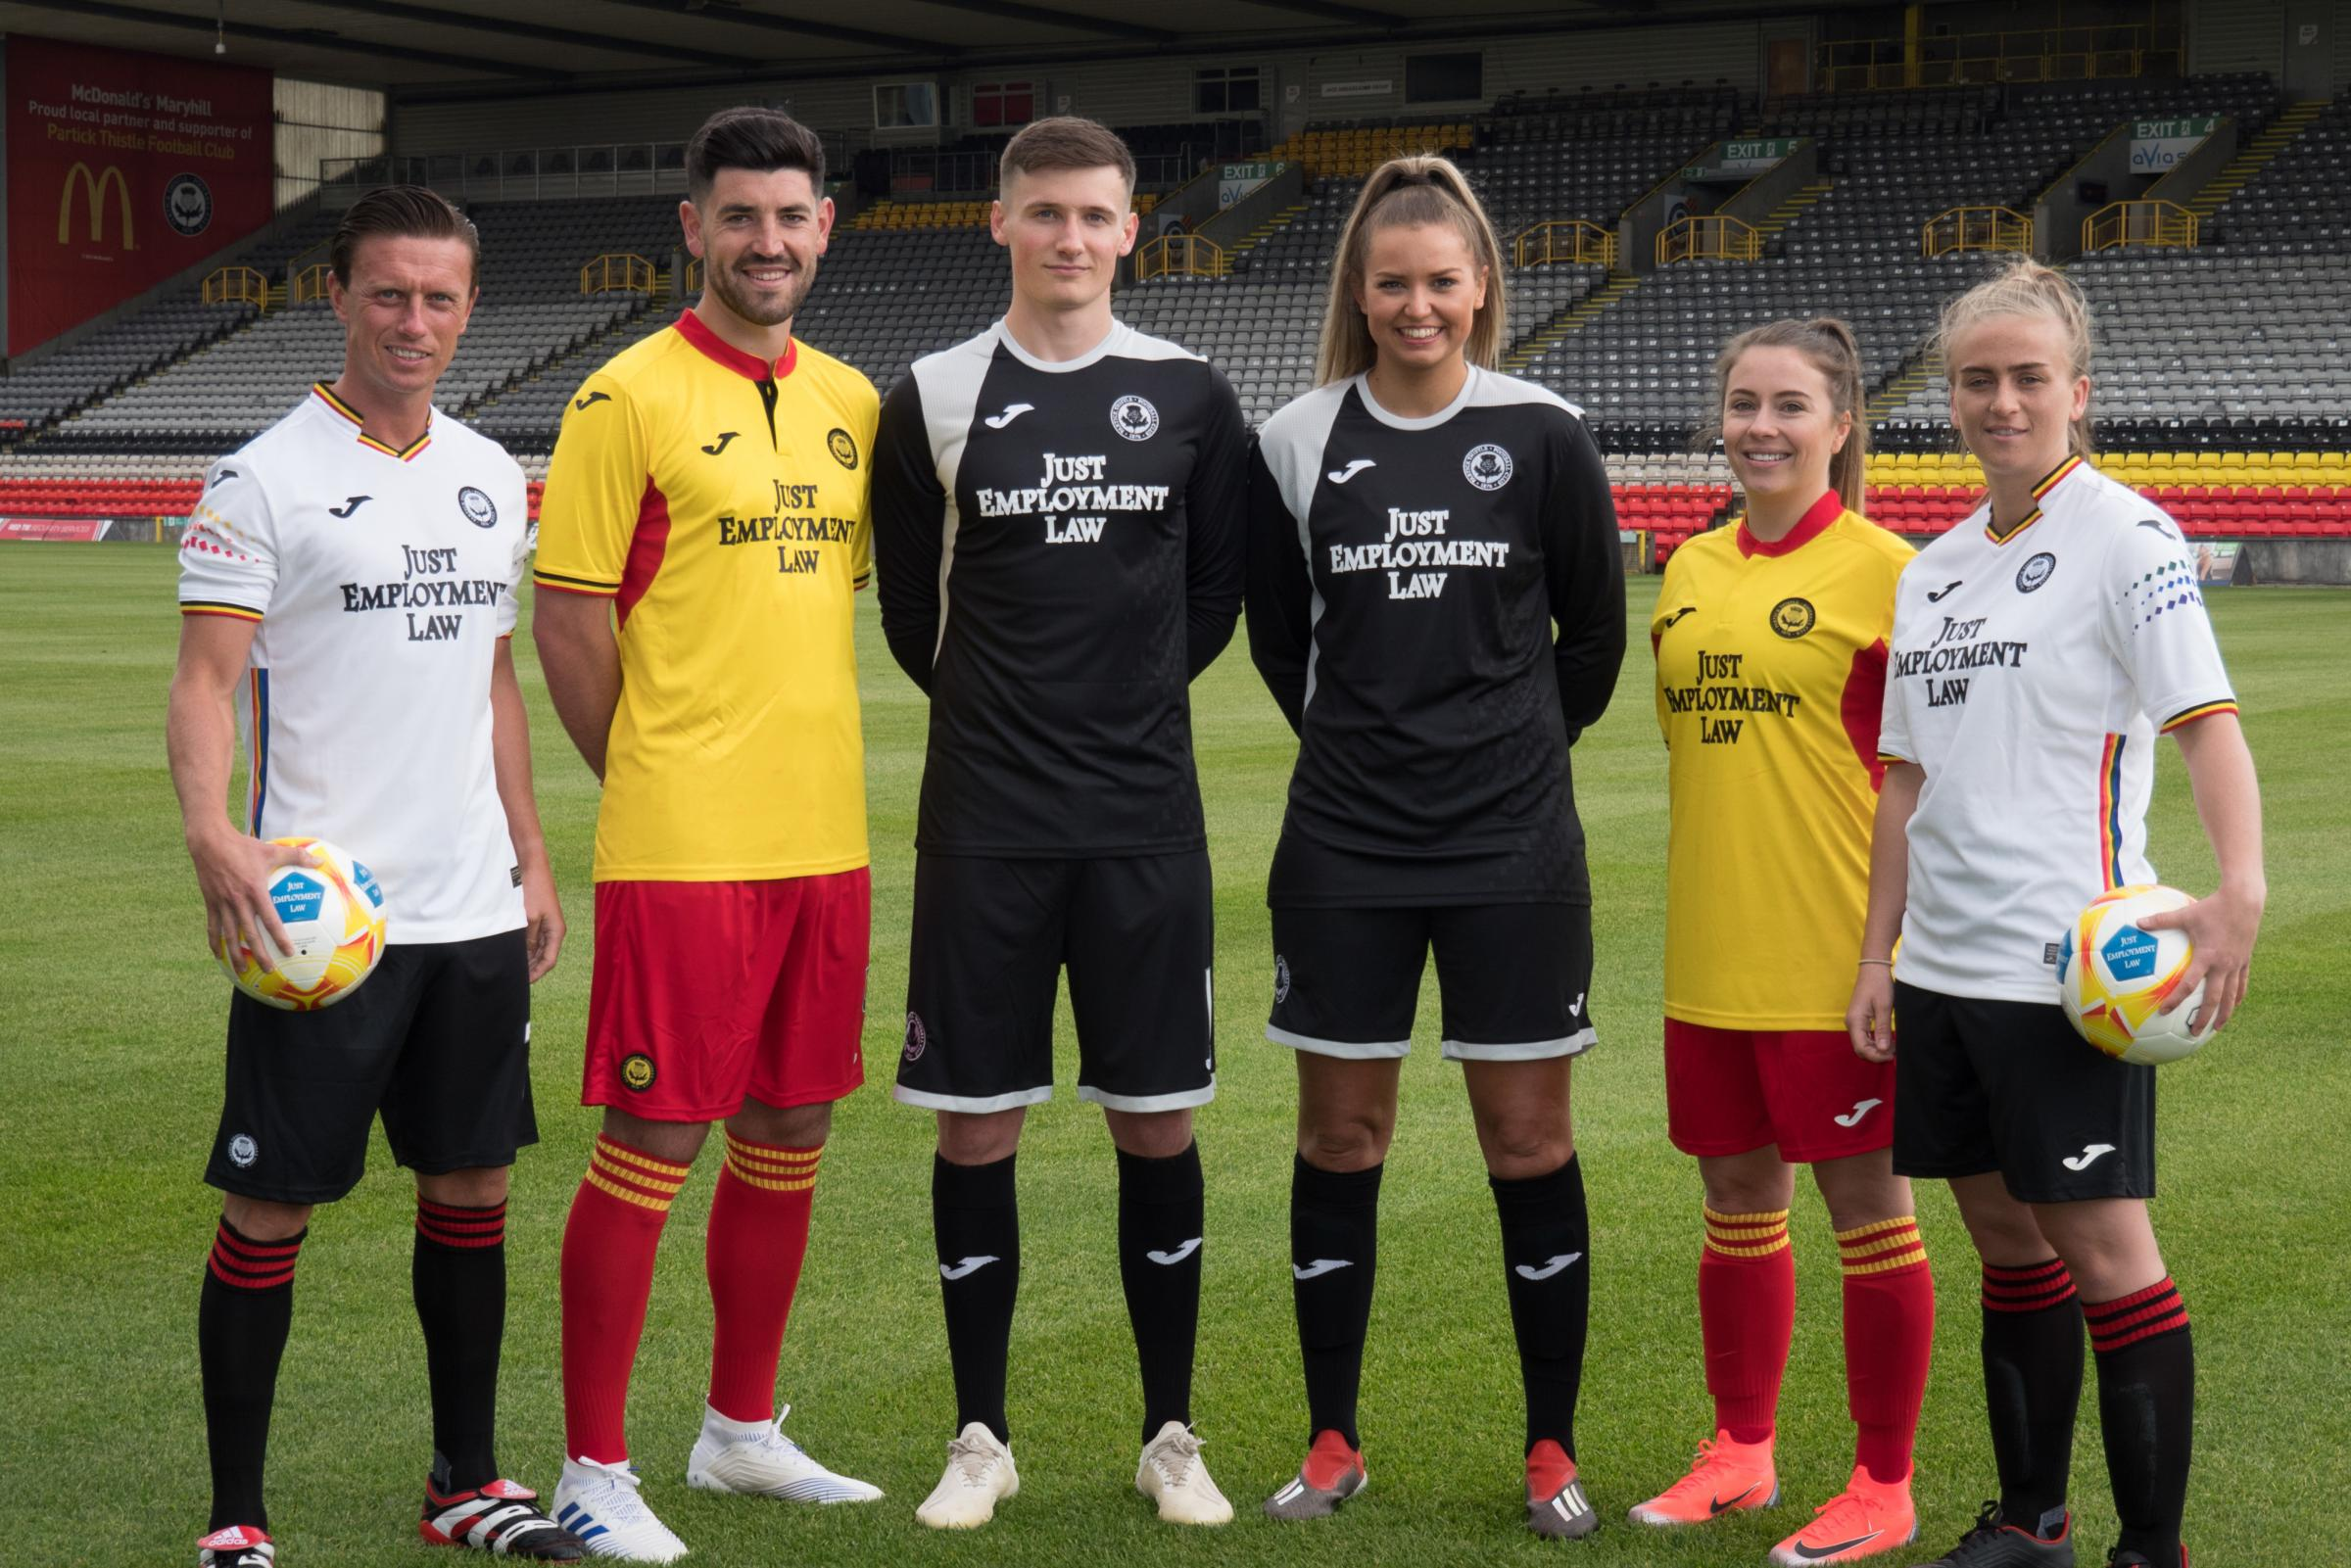 Tam O'Ware straining at the leash after being guided back by Partick Thistle captain Bannigan